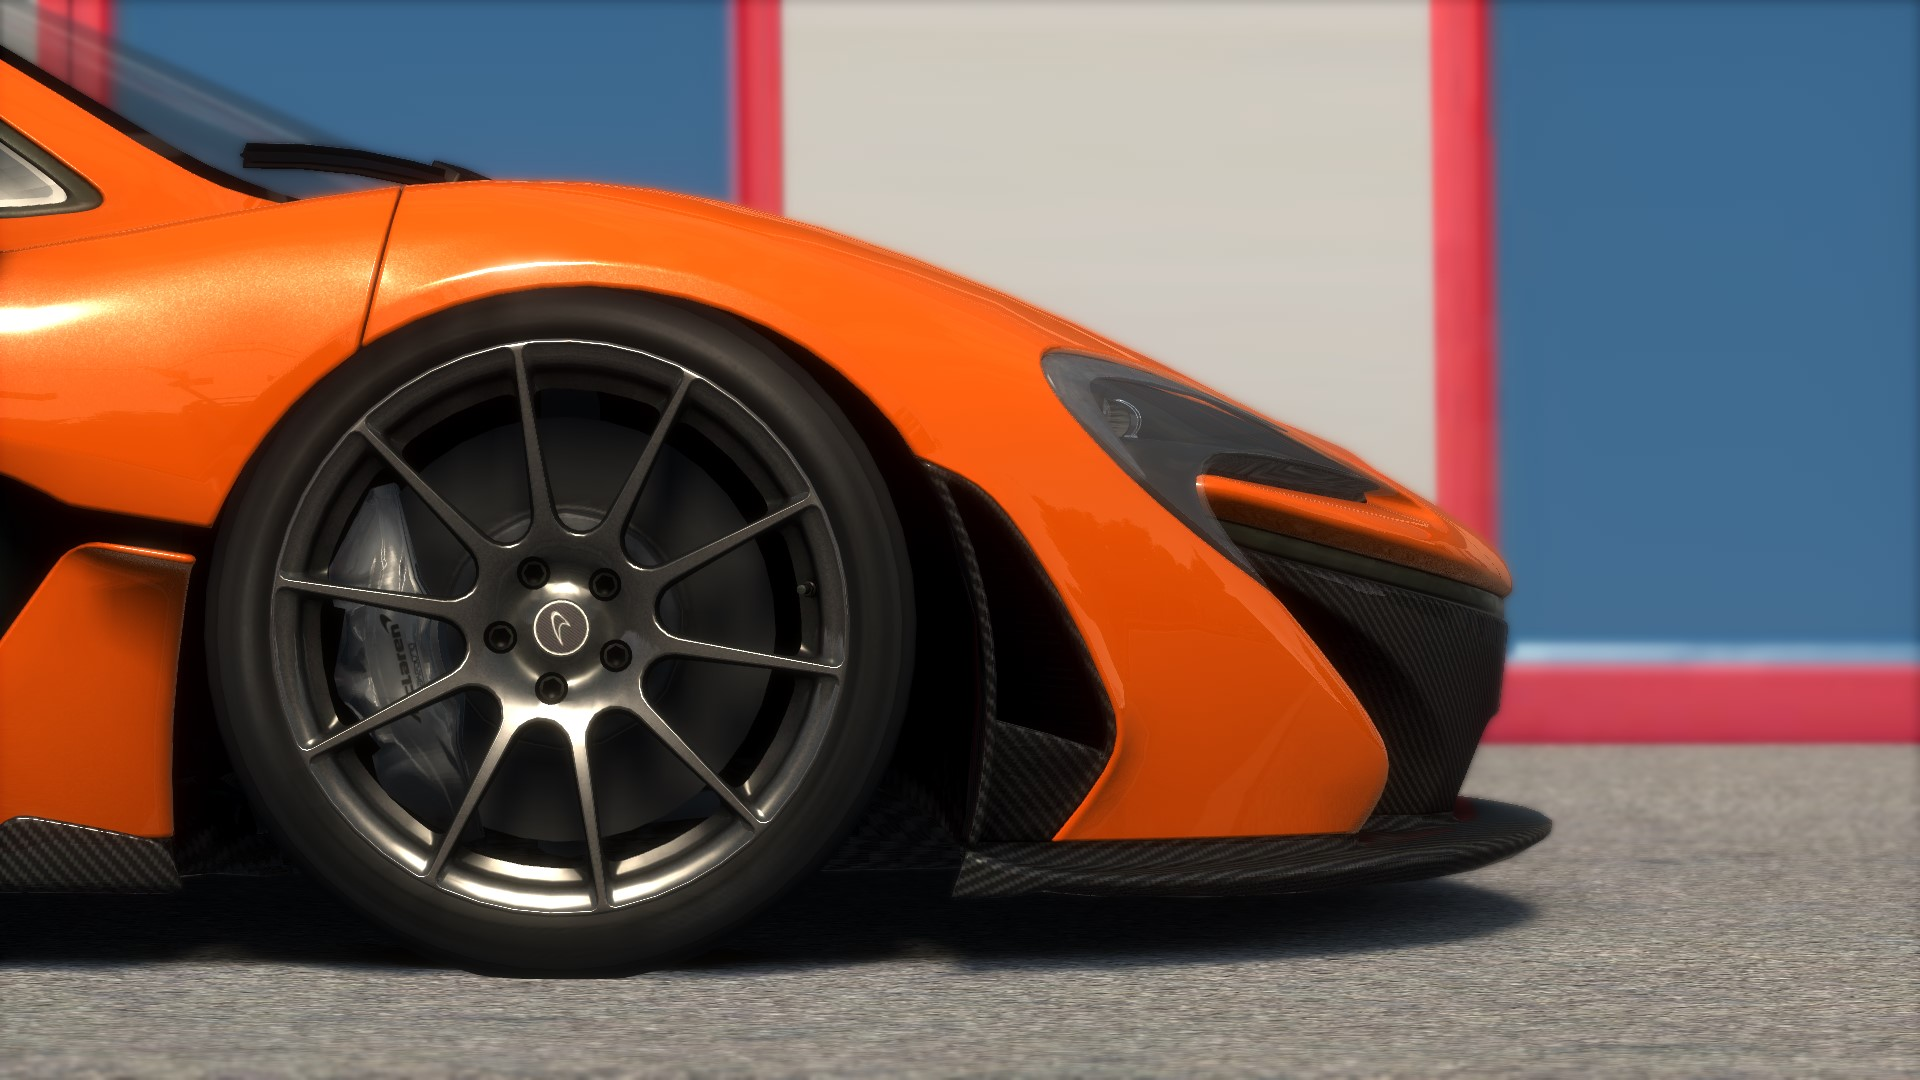 Screenshot_ks_mclaren_p1_imola_11-8-115-20-42-45.jpg